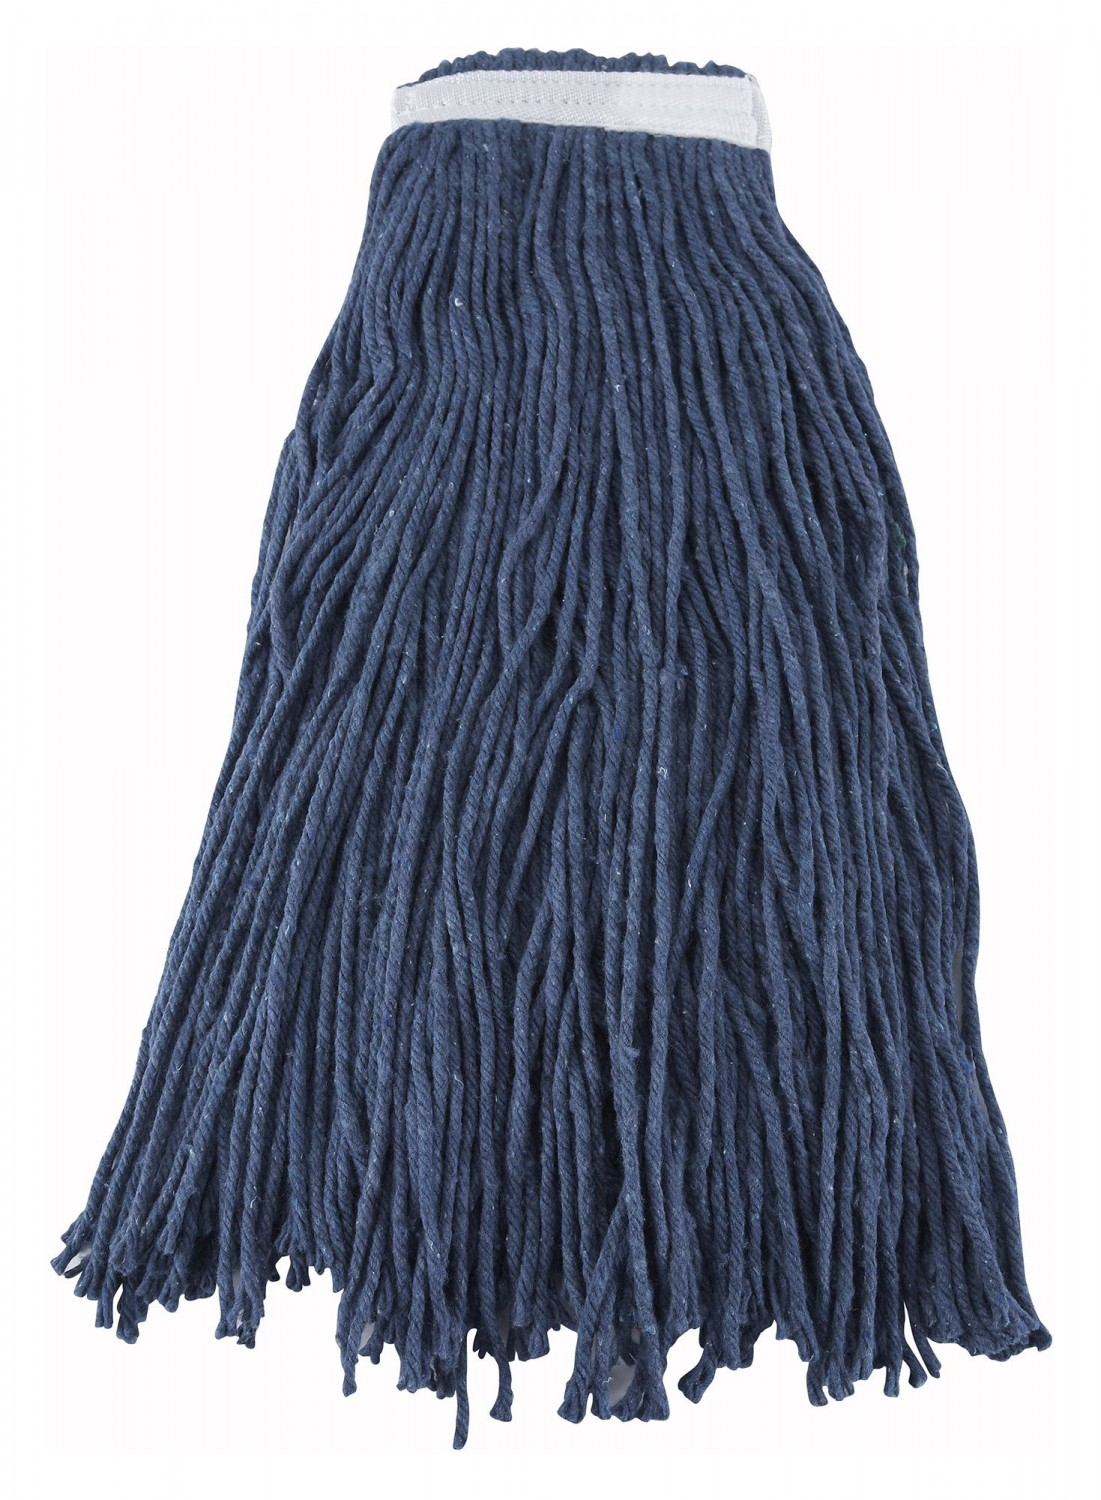 Winco MOP-32C Blue Yarn Mop Head with Cut Ends 32 oz.